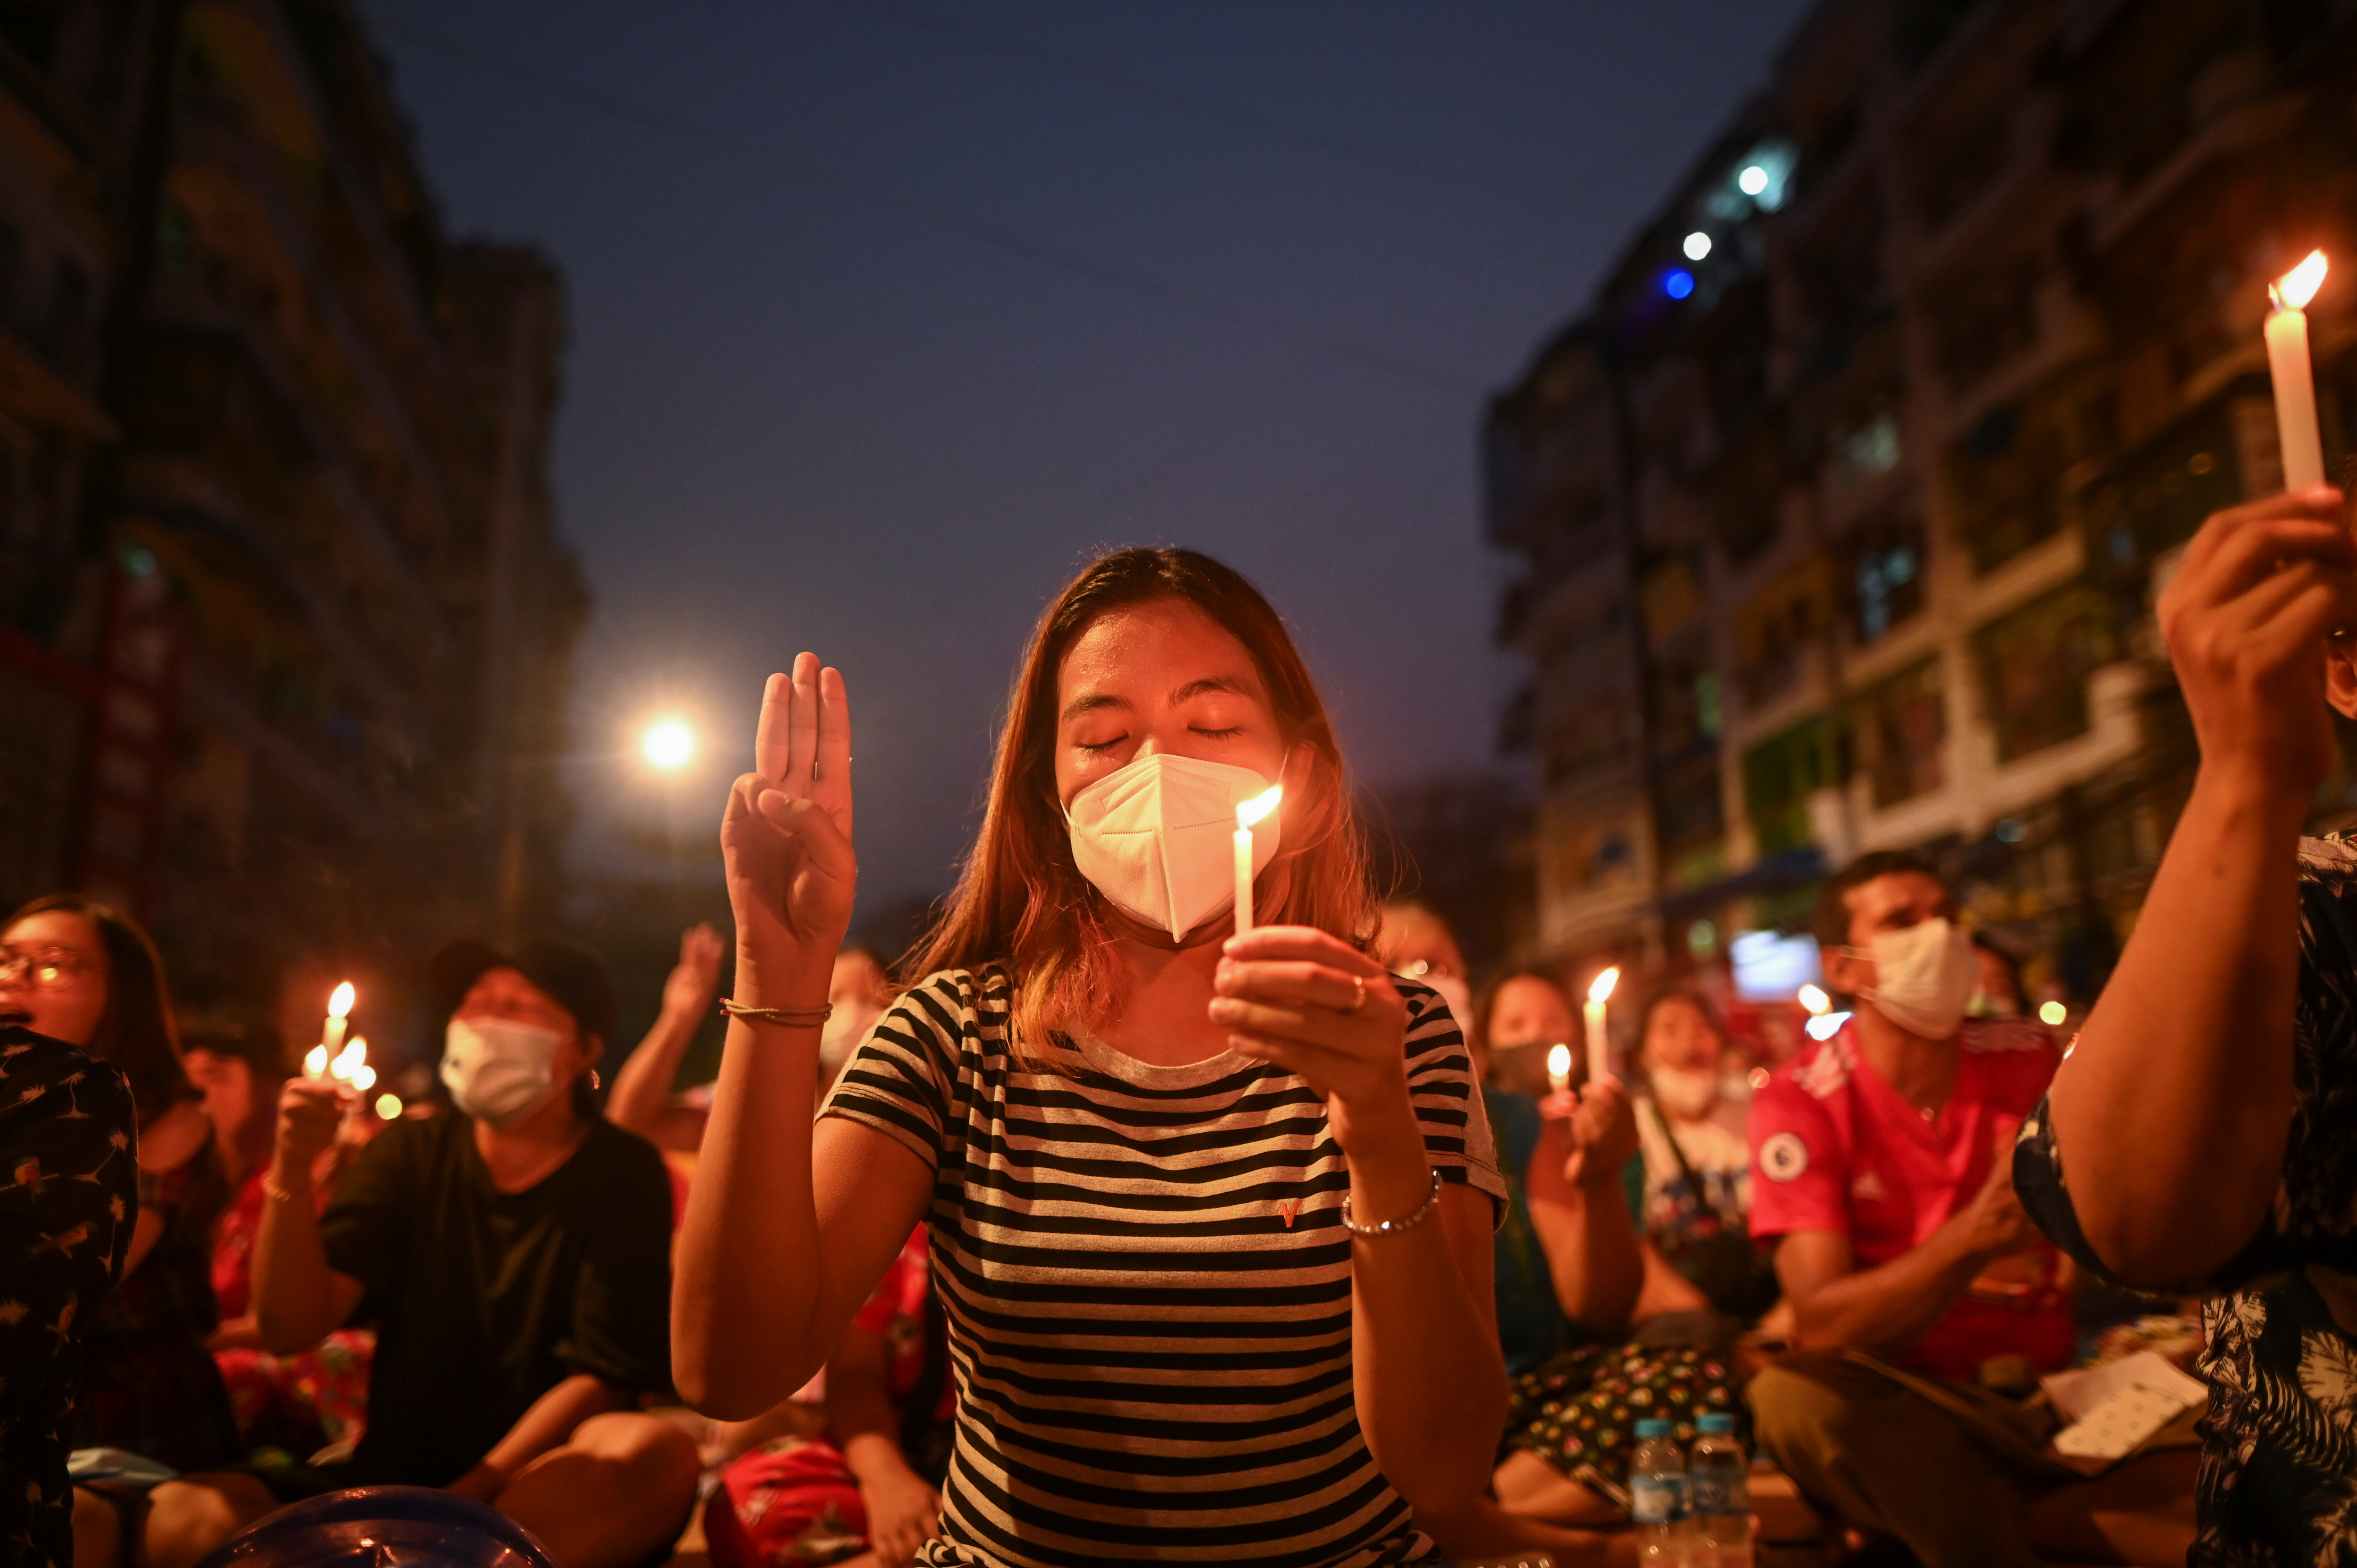 With the death toll increasing protesters have begun to hold candlelit vigils